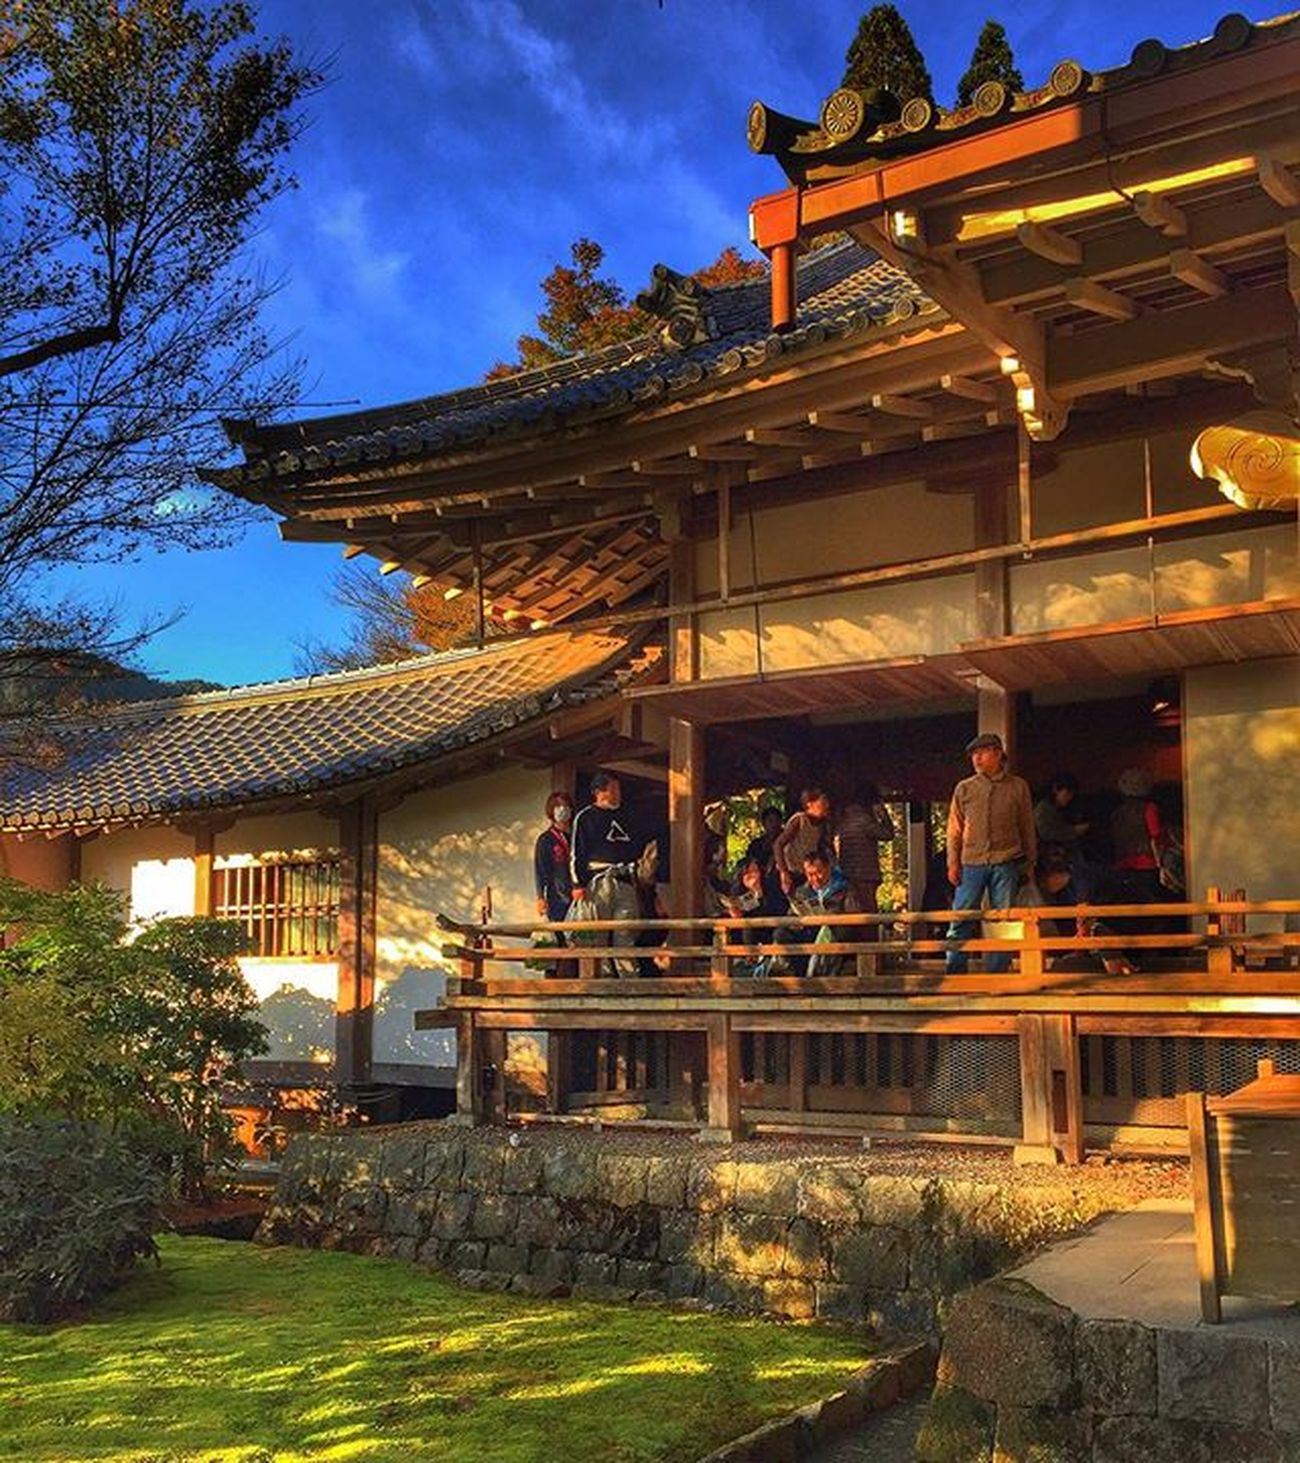 A beautiful temple in Kyoto . Garden Autumn Awesome_japan All_shots Landscape Landscape_lovers Landscape_captures Landscapestyles_gf Landscapes Hdr_pics VSCO Phototag_it Photooftheday Master_pics Master_shot Ig_sharepoint Ig_world Igs_today Instagood Instamood Globalcapture Insta_worldz Travel Holiday Nature naturelover rsa_nature jp_views hdr instagram